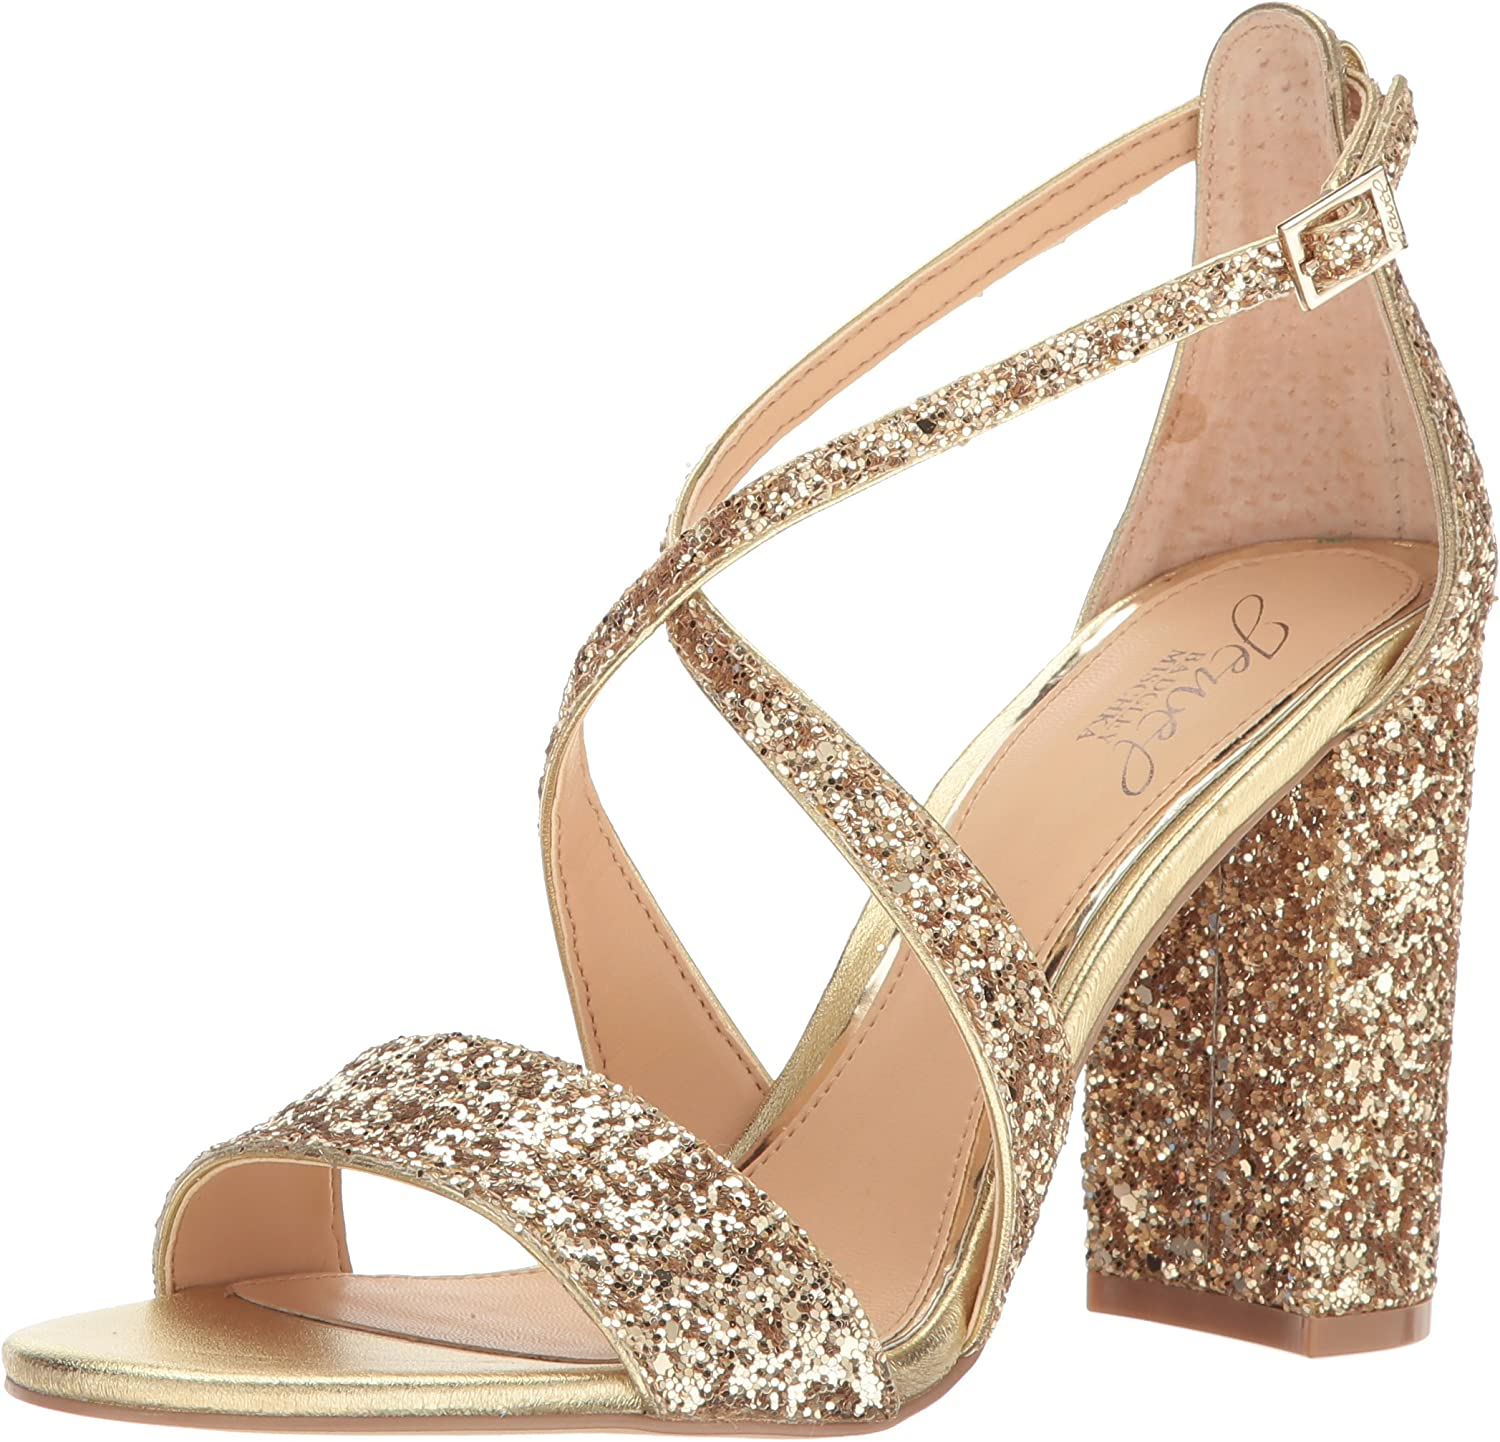 Outlet sale feature Jewel Badgley Mischka Women's Sandal Limited time cheap sale Dress Cook